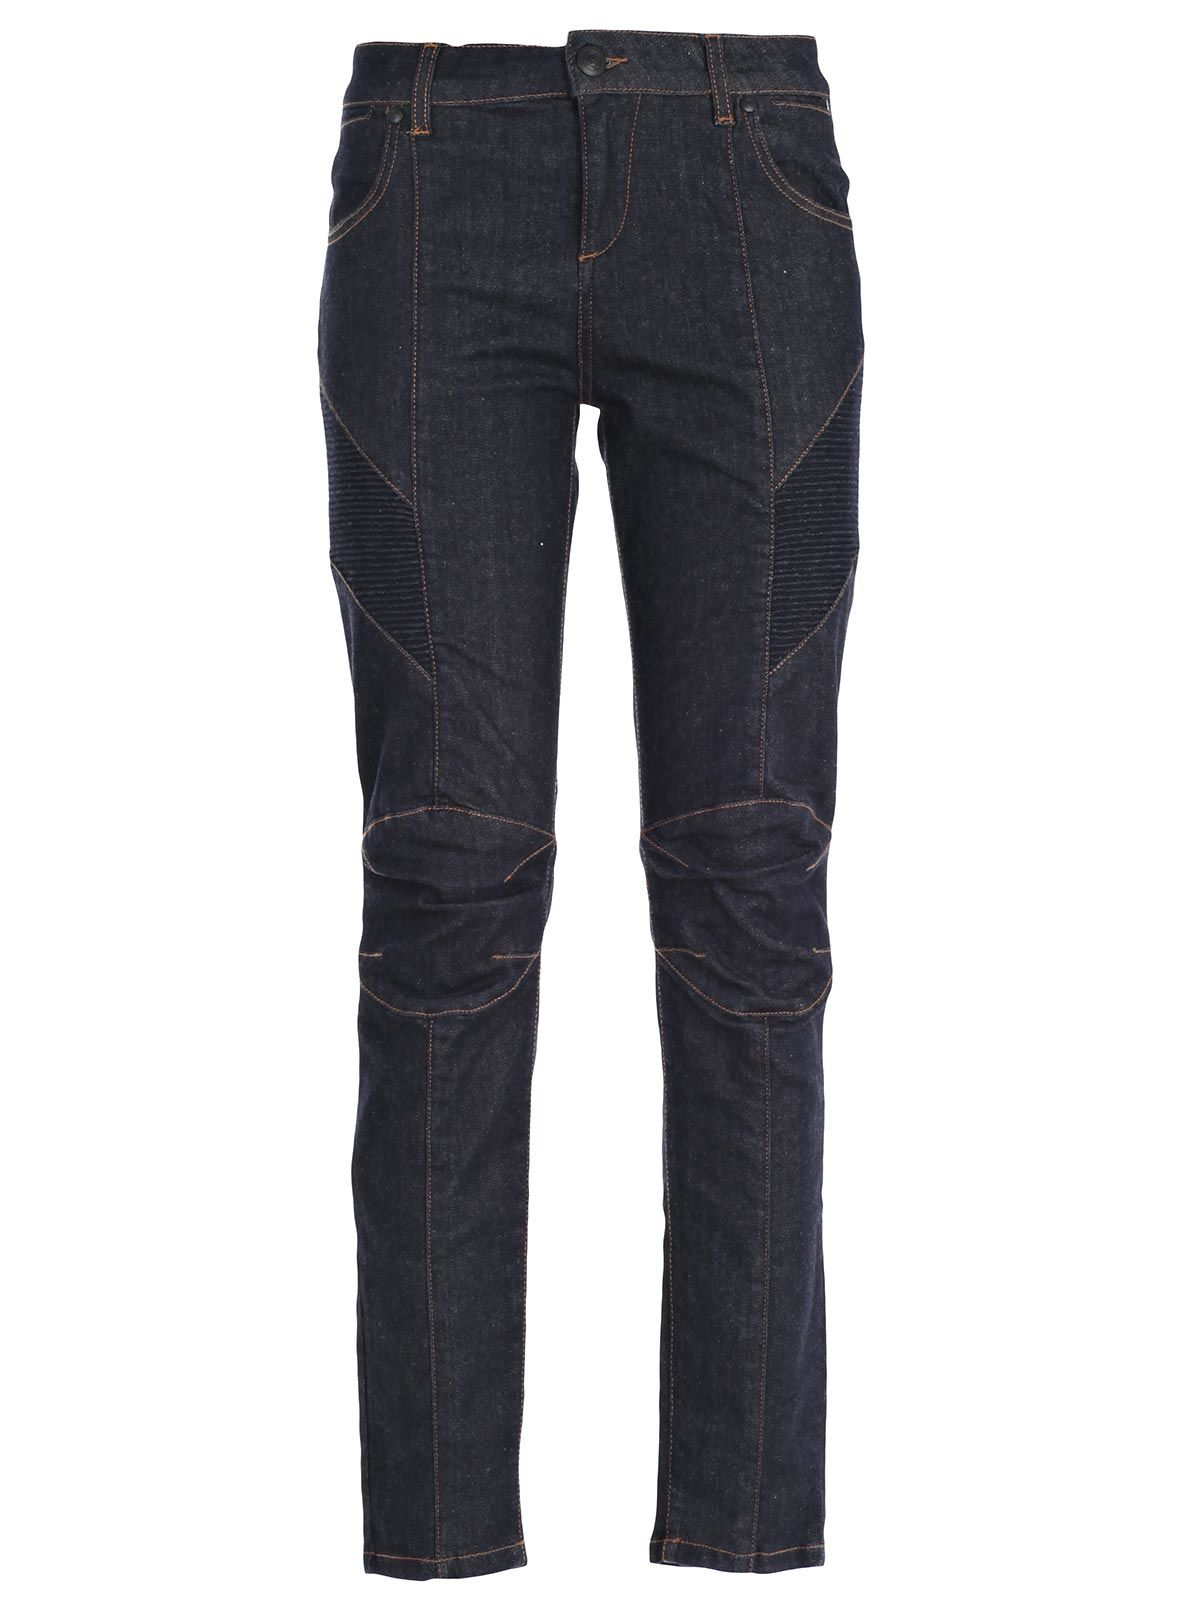 Thanks to the advantageous prices at Vestiaire Collective, you will finally be able to give into this model of Jeans from PIERRE BALMAIN without ruining yourself. Get yourself some waistcoats, watches, clothing, dresses for children, women and men, while benefiting from slashed prices every day.